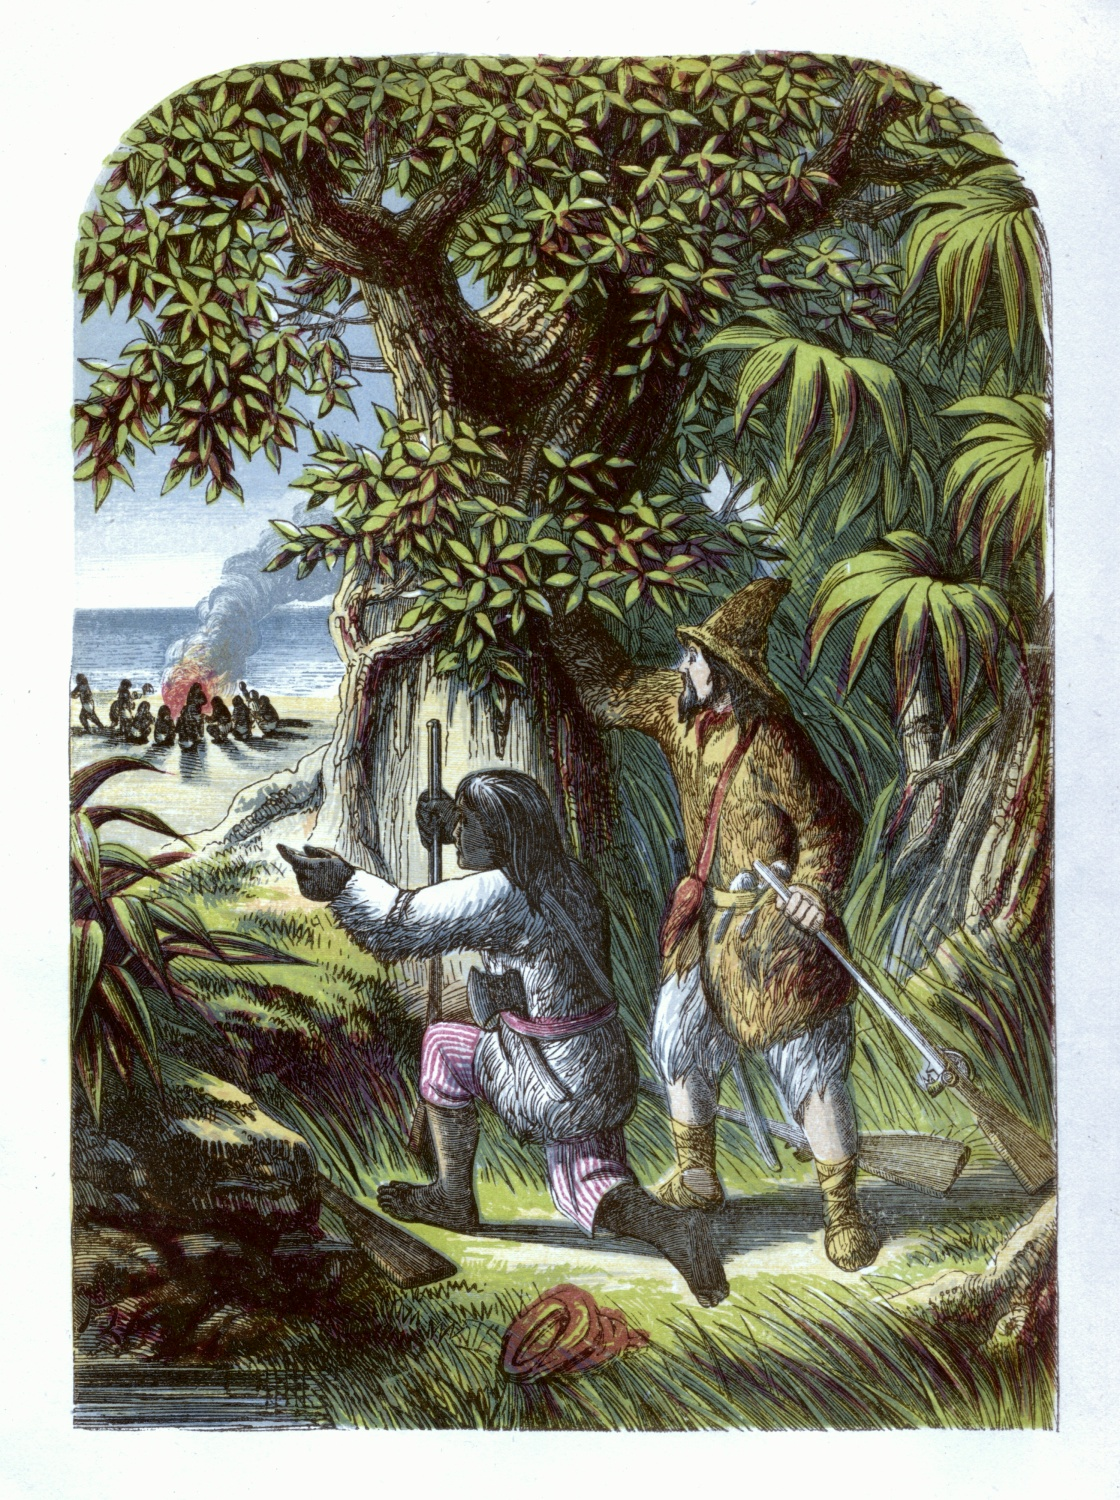 Robinson Crusoe and Friday attacking the savages